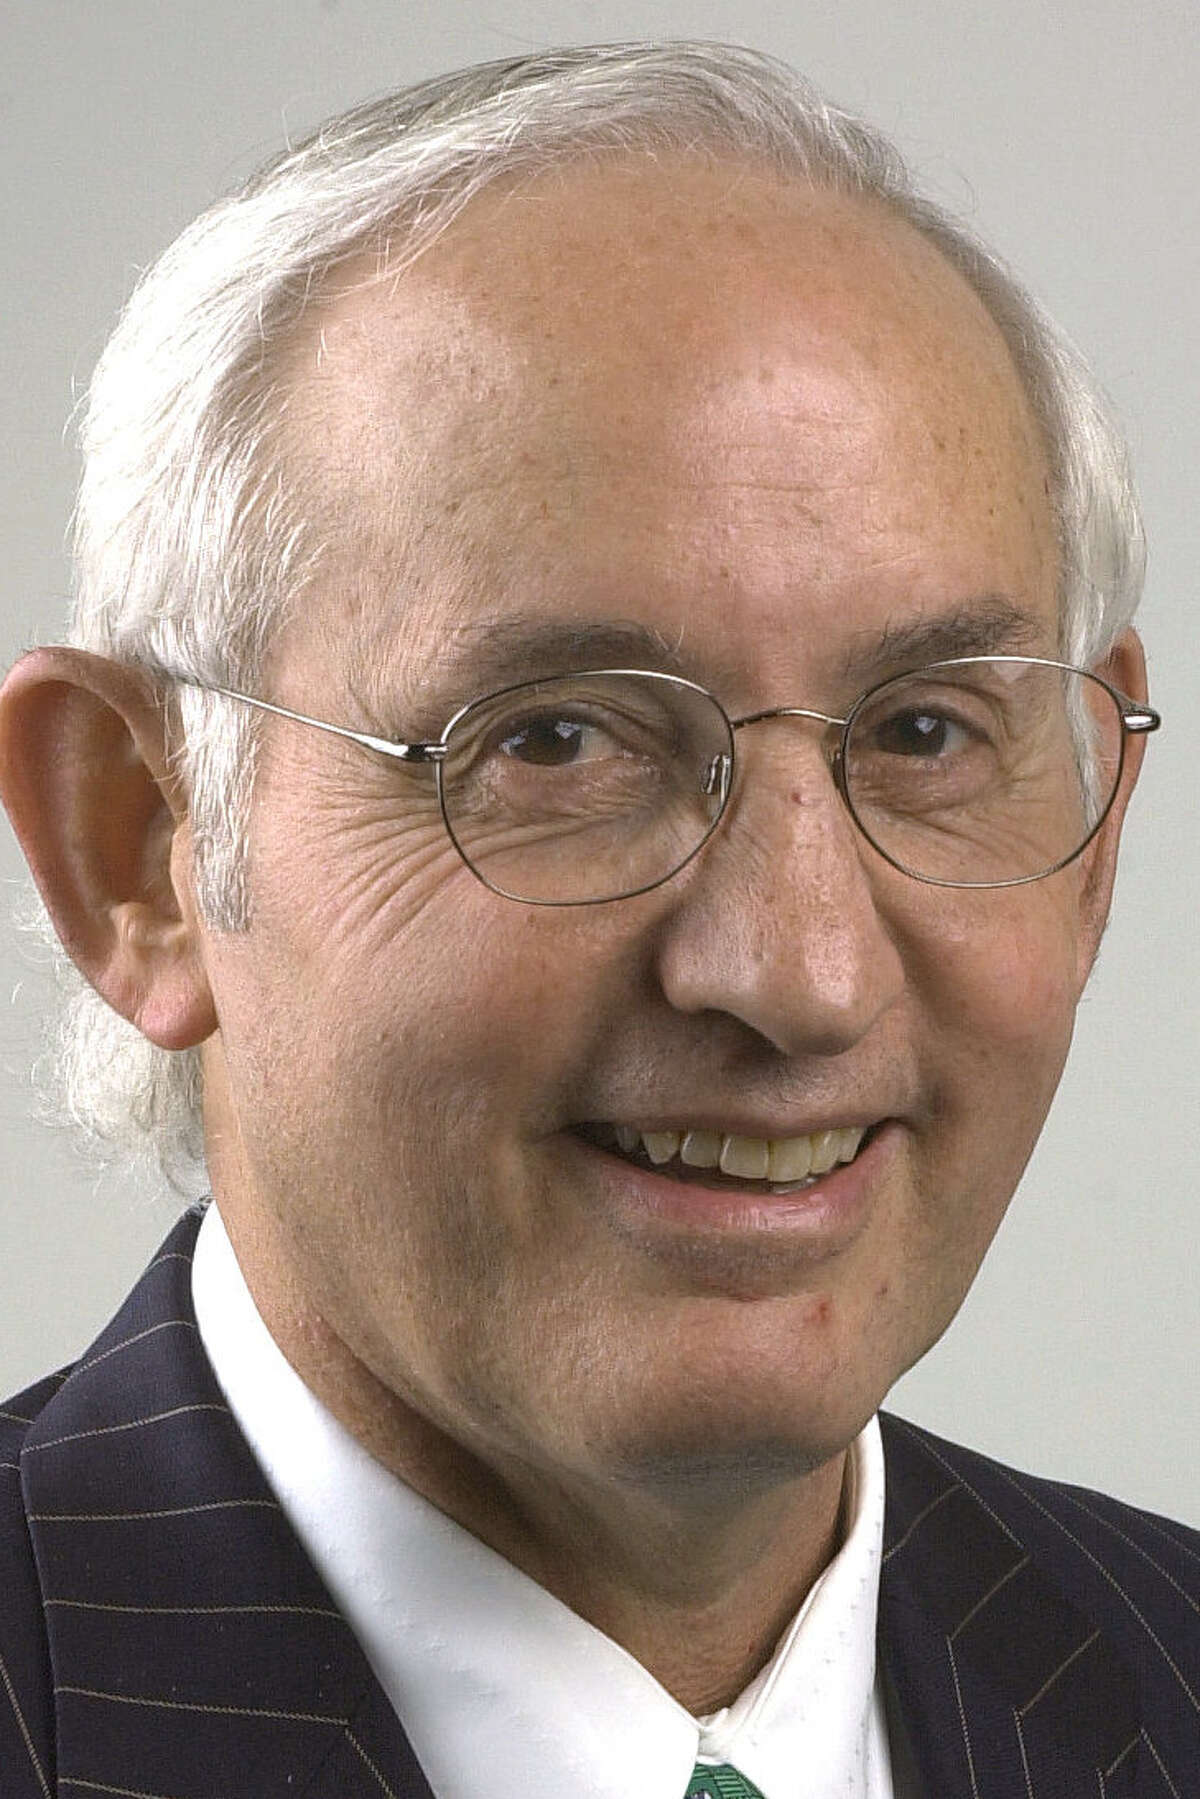 Mickey Roth is president emeritus of Intercontinental Asset Management.